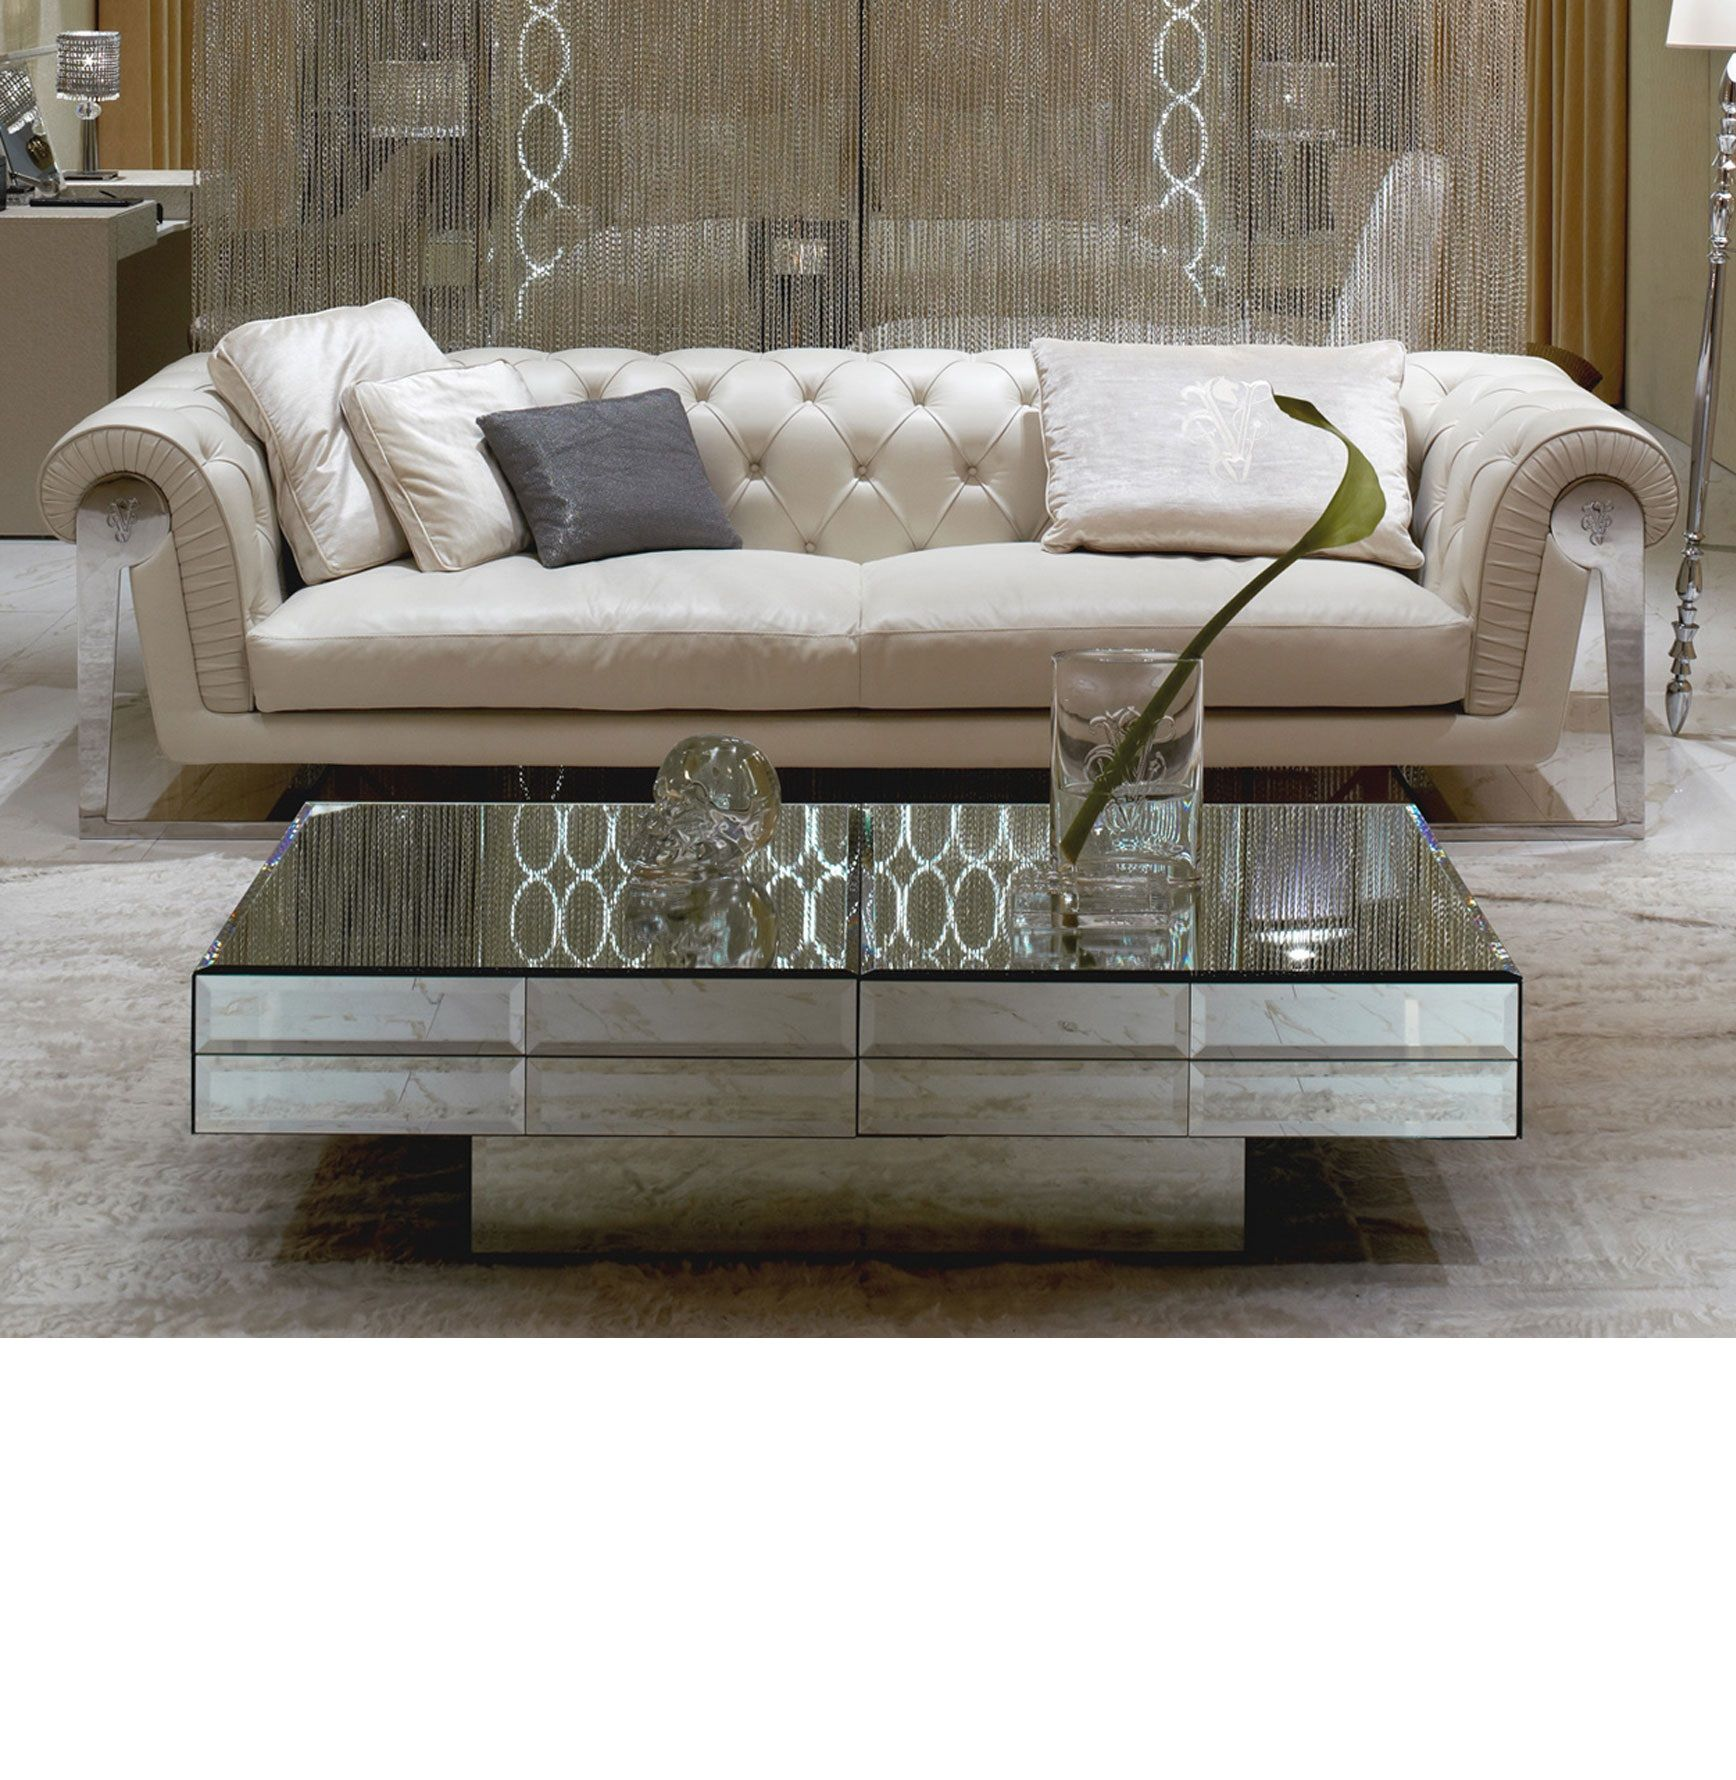 InStyle Decor Luxury Coffee Tables Cocktail Tables Luxury